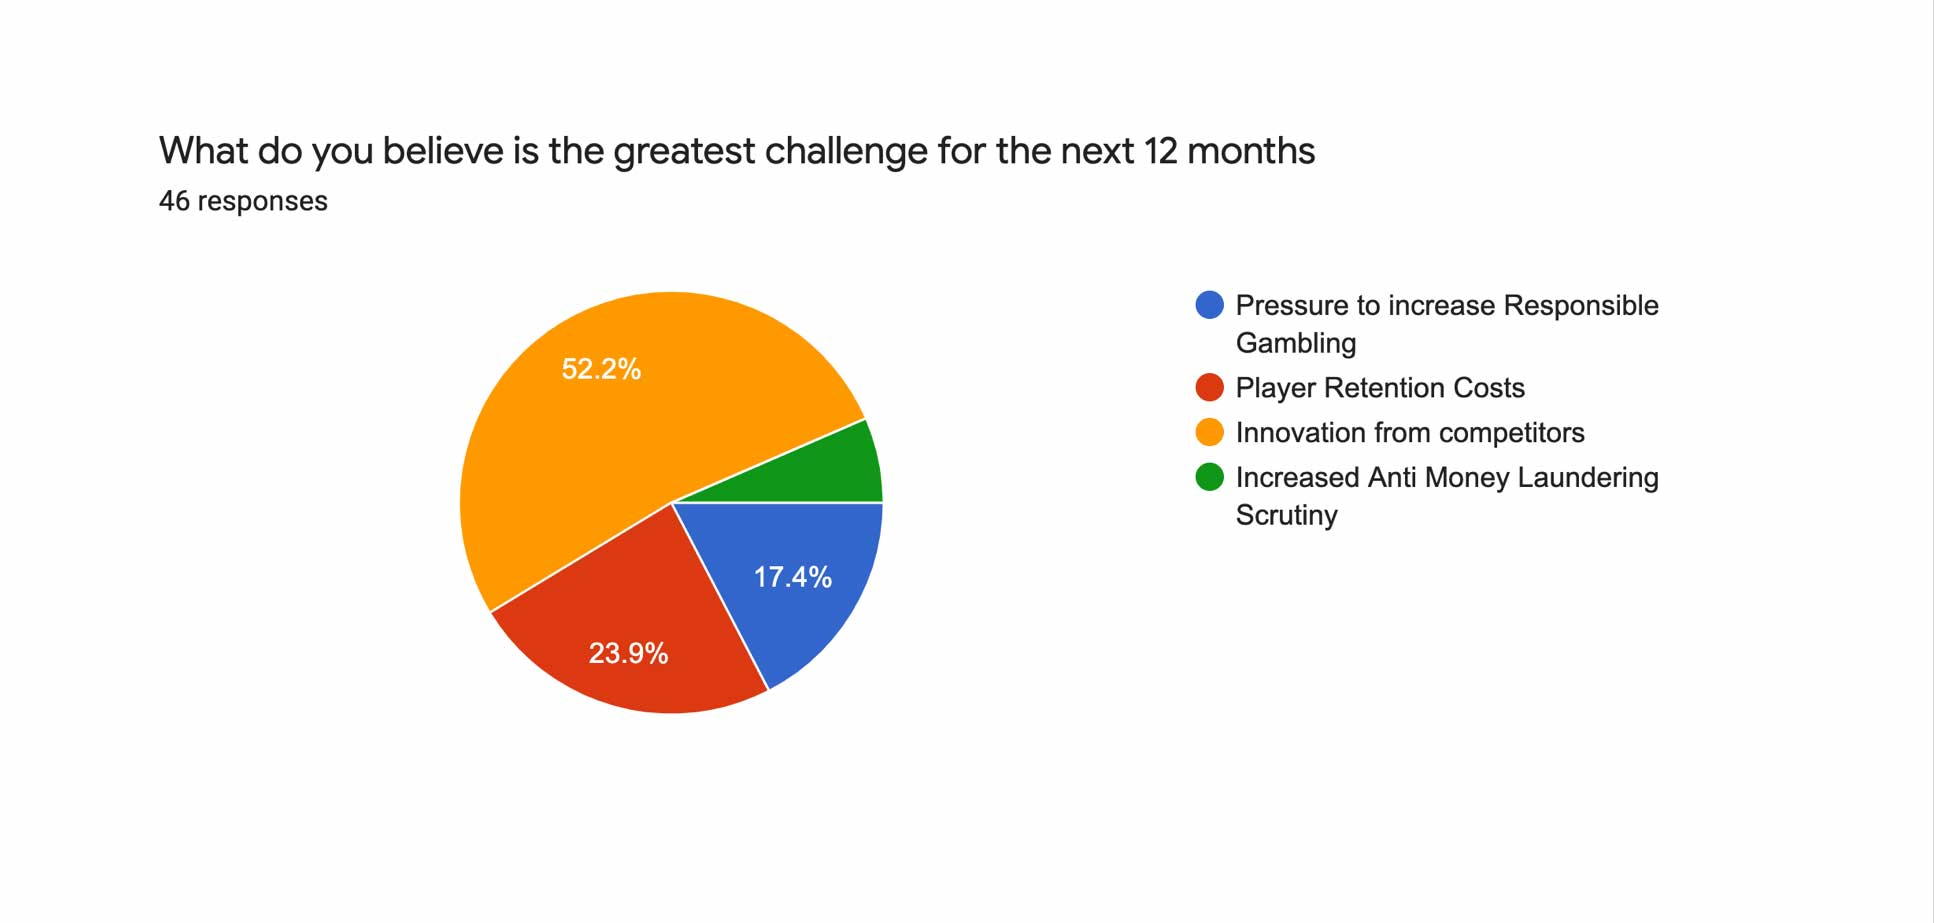 What do you believe is the greatest challenge for the next 12 months